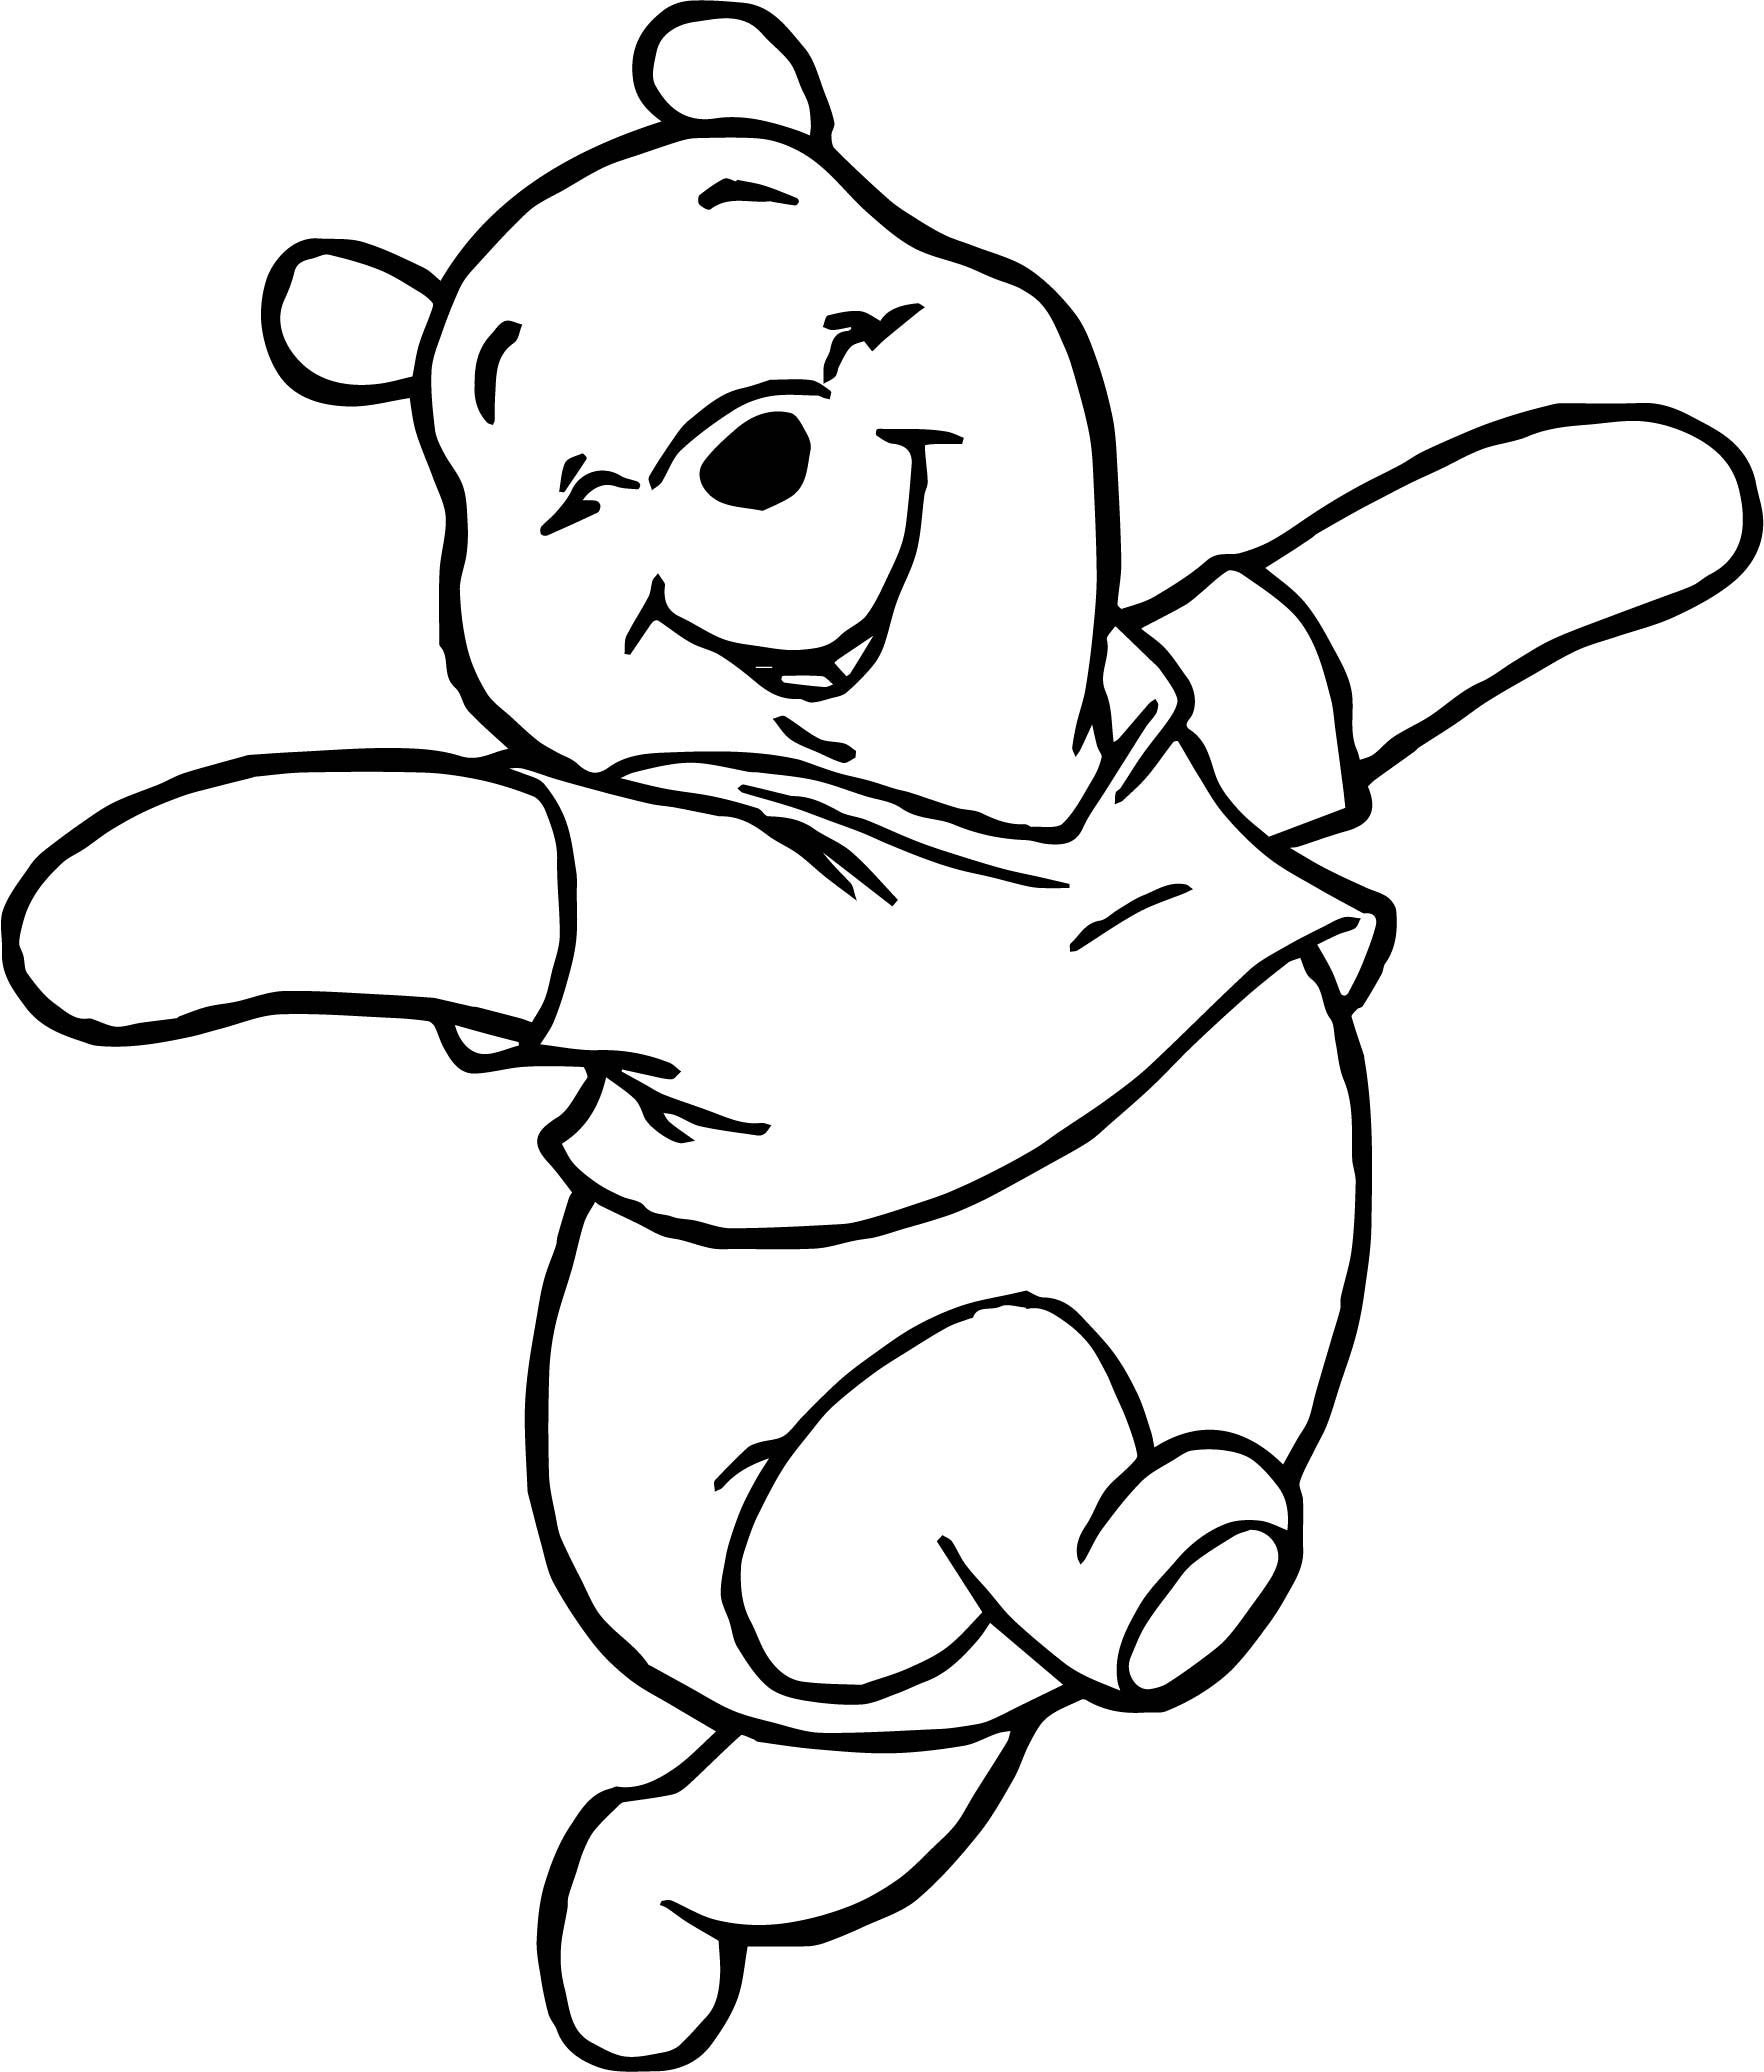 Winnie the pooh happy walking coloring page for Pooh coloring page